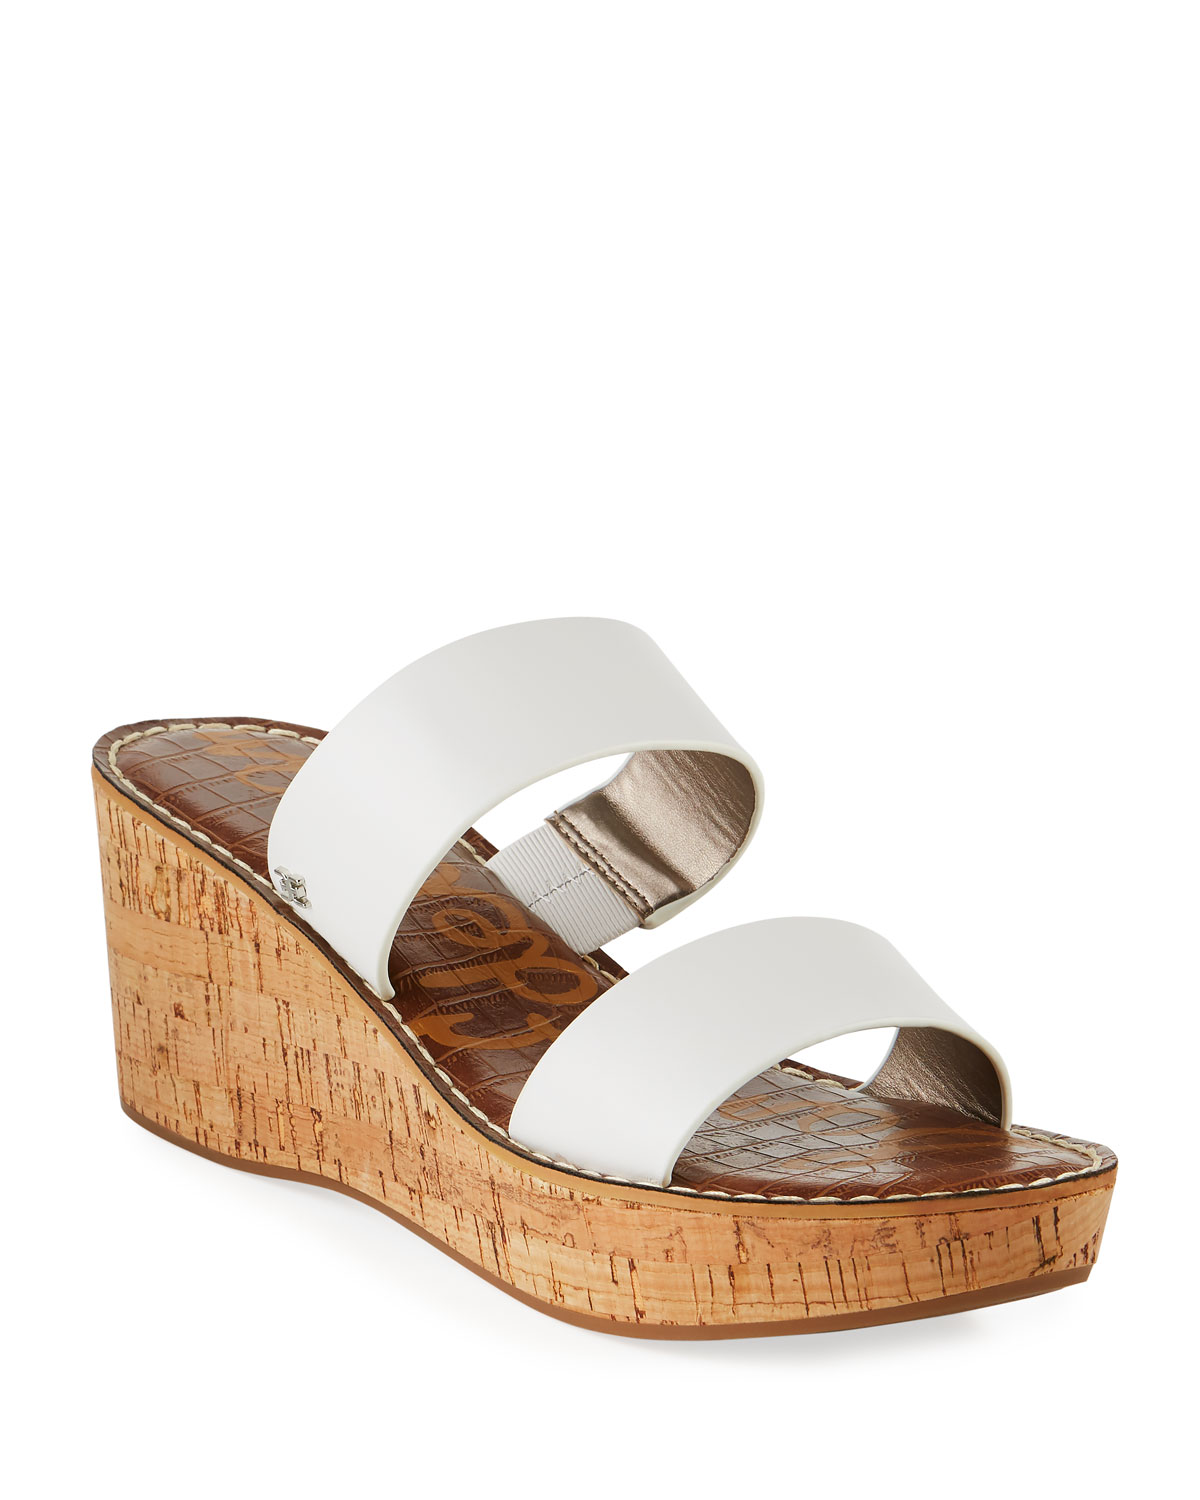 Rydell Cork-Wedge Leather Sandals, White